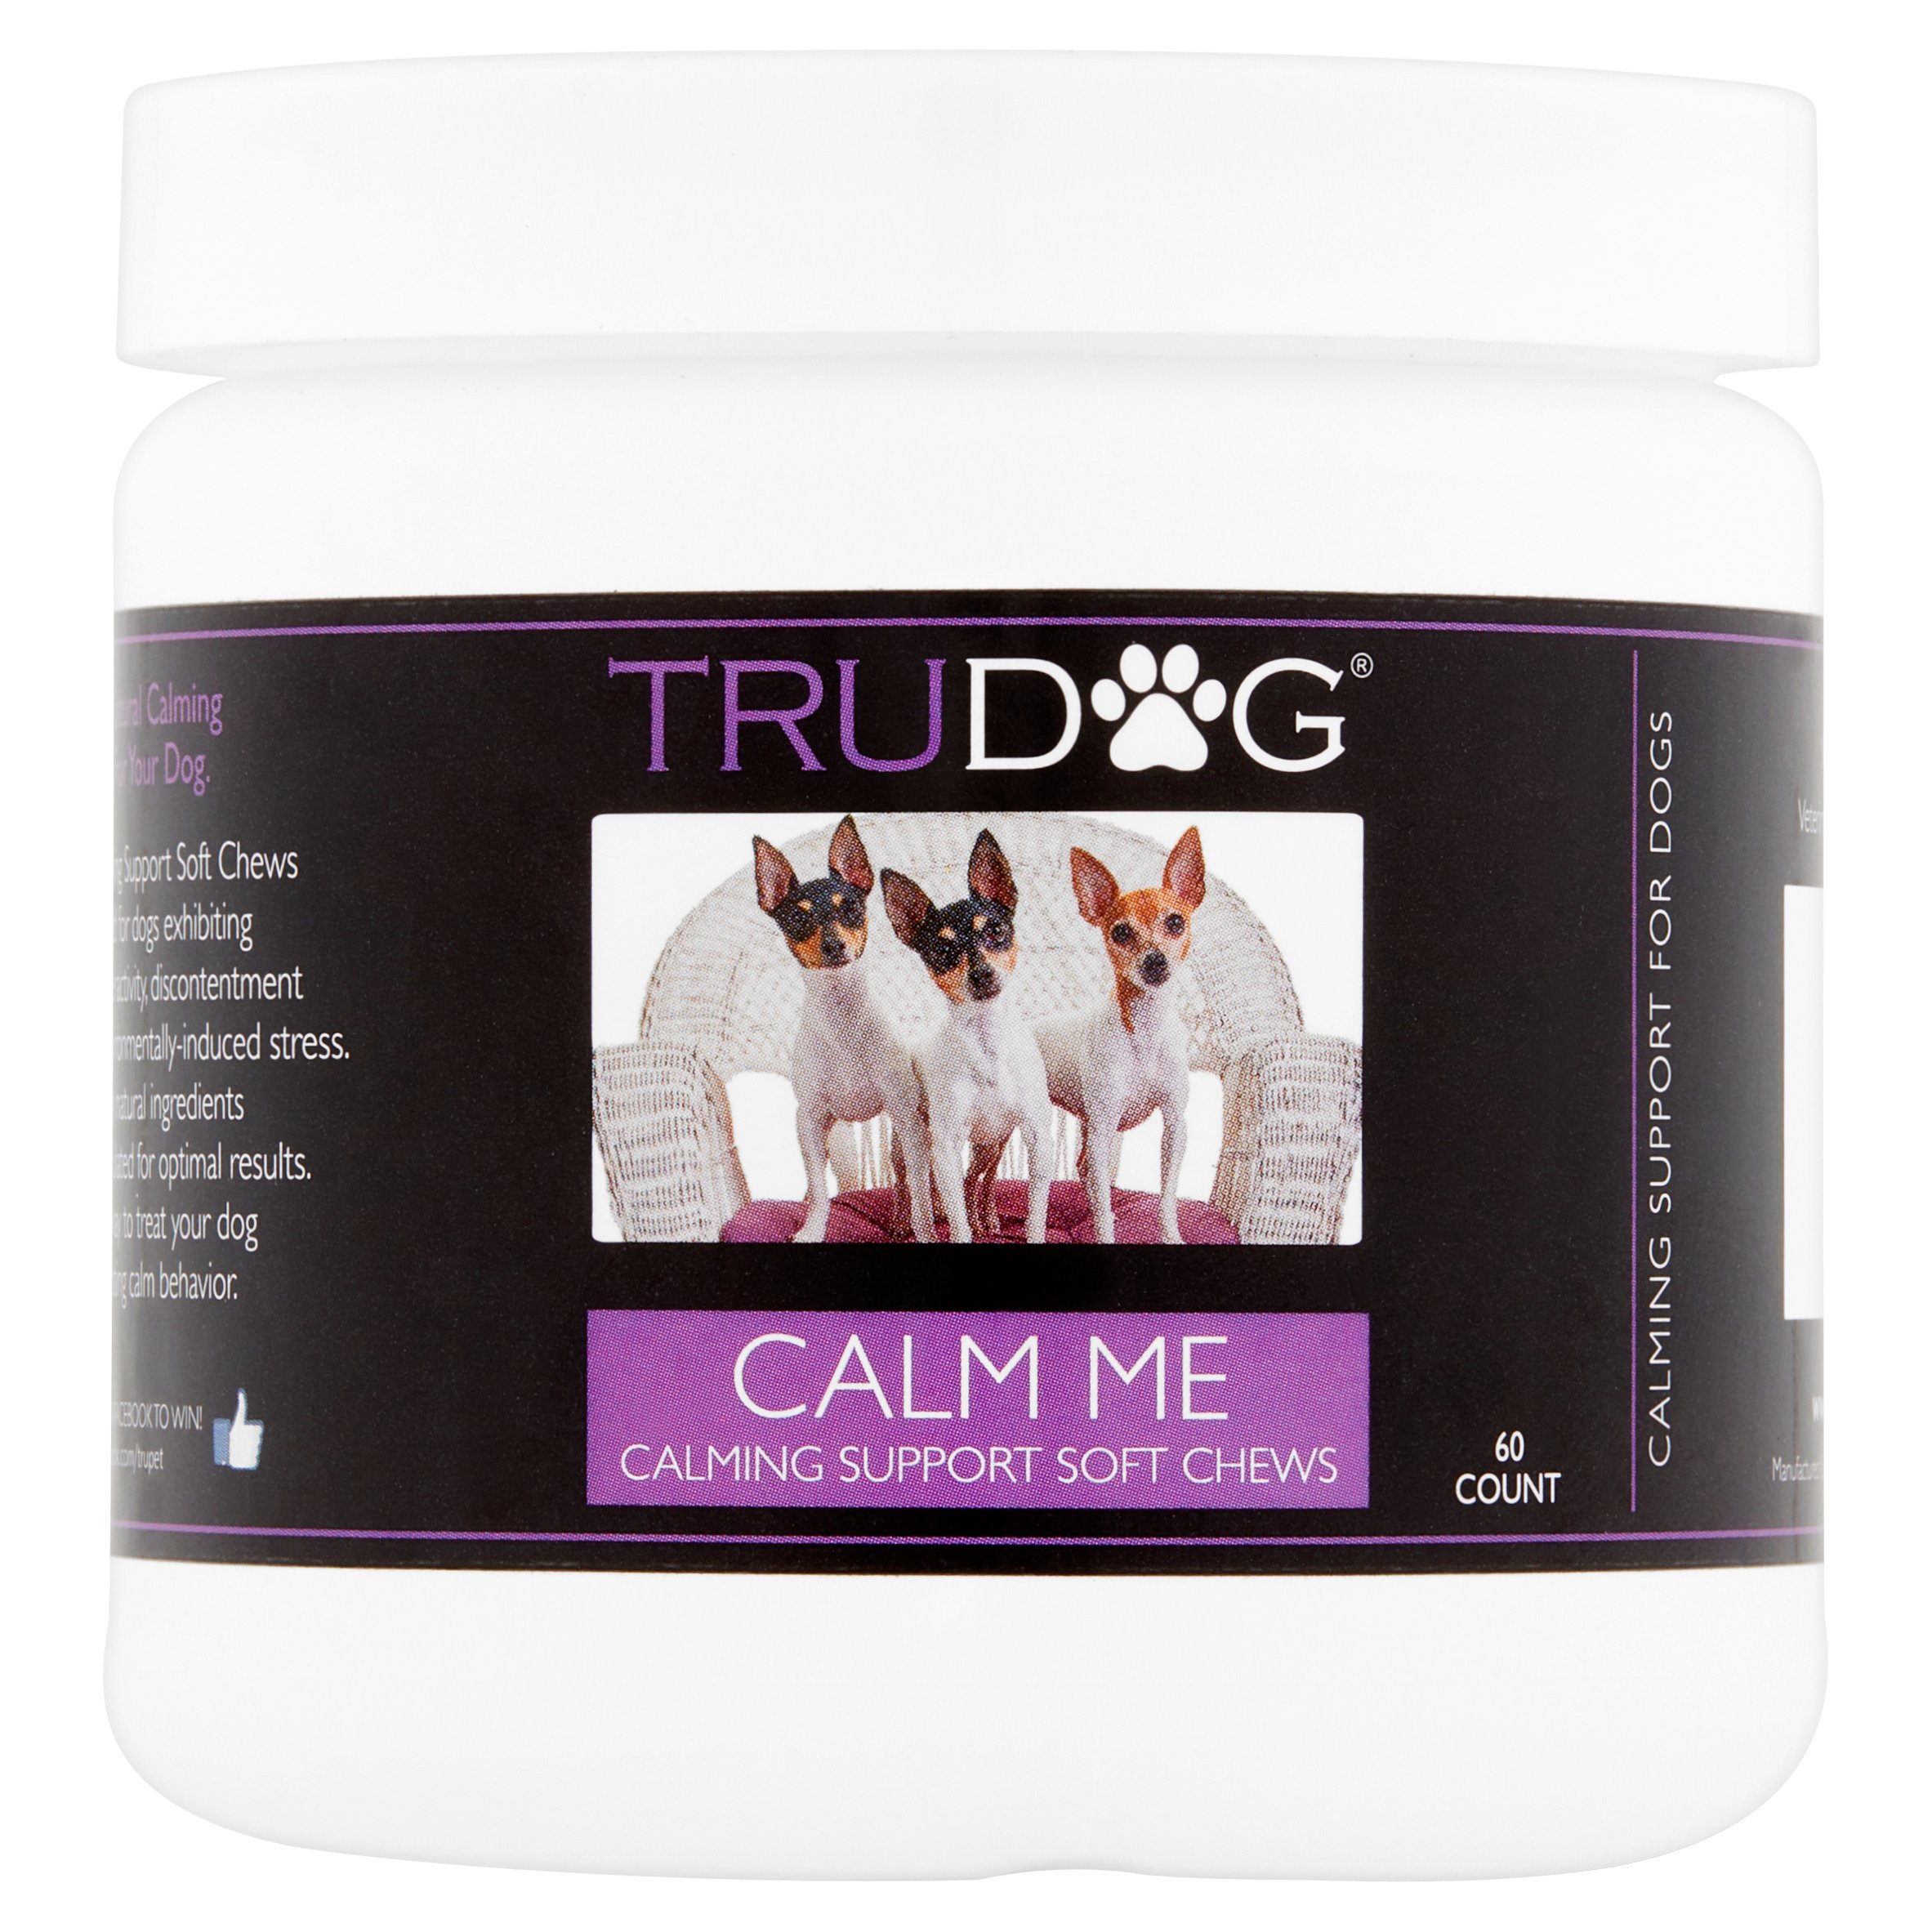 TruDog Calm Me Calming Support Chews Supplement, 60 count